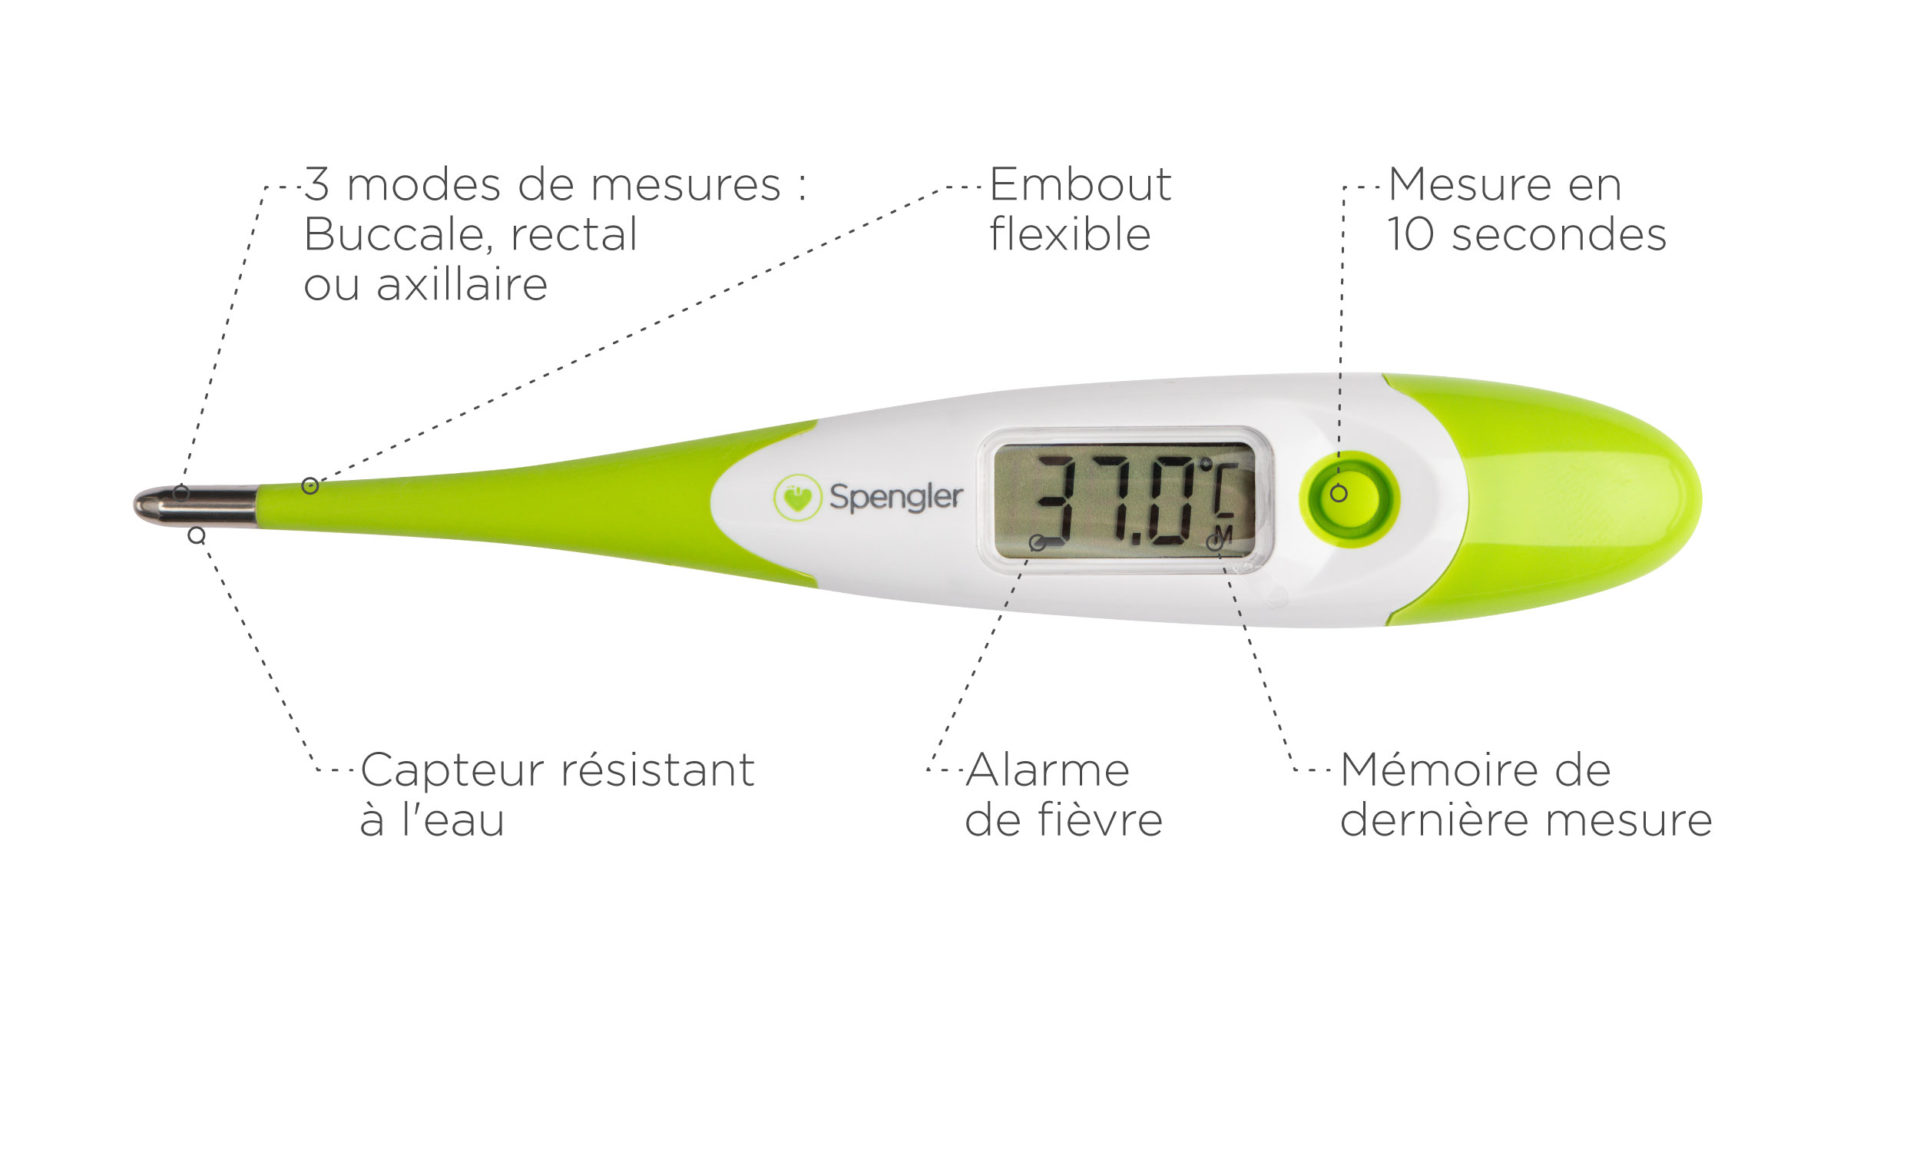 Thermomètre rectal Tempo 10 Flex embout flexible